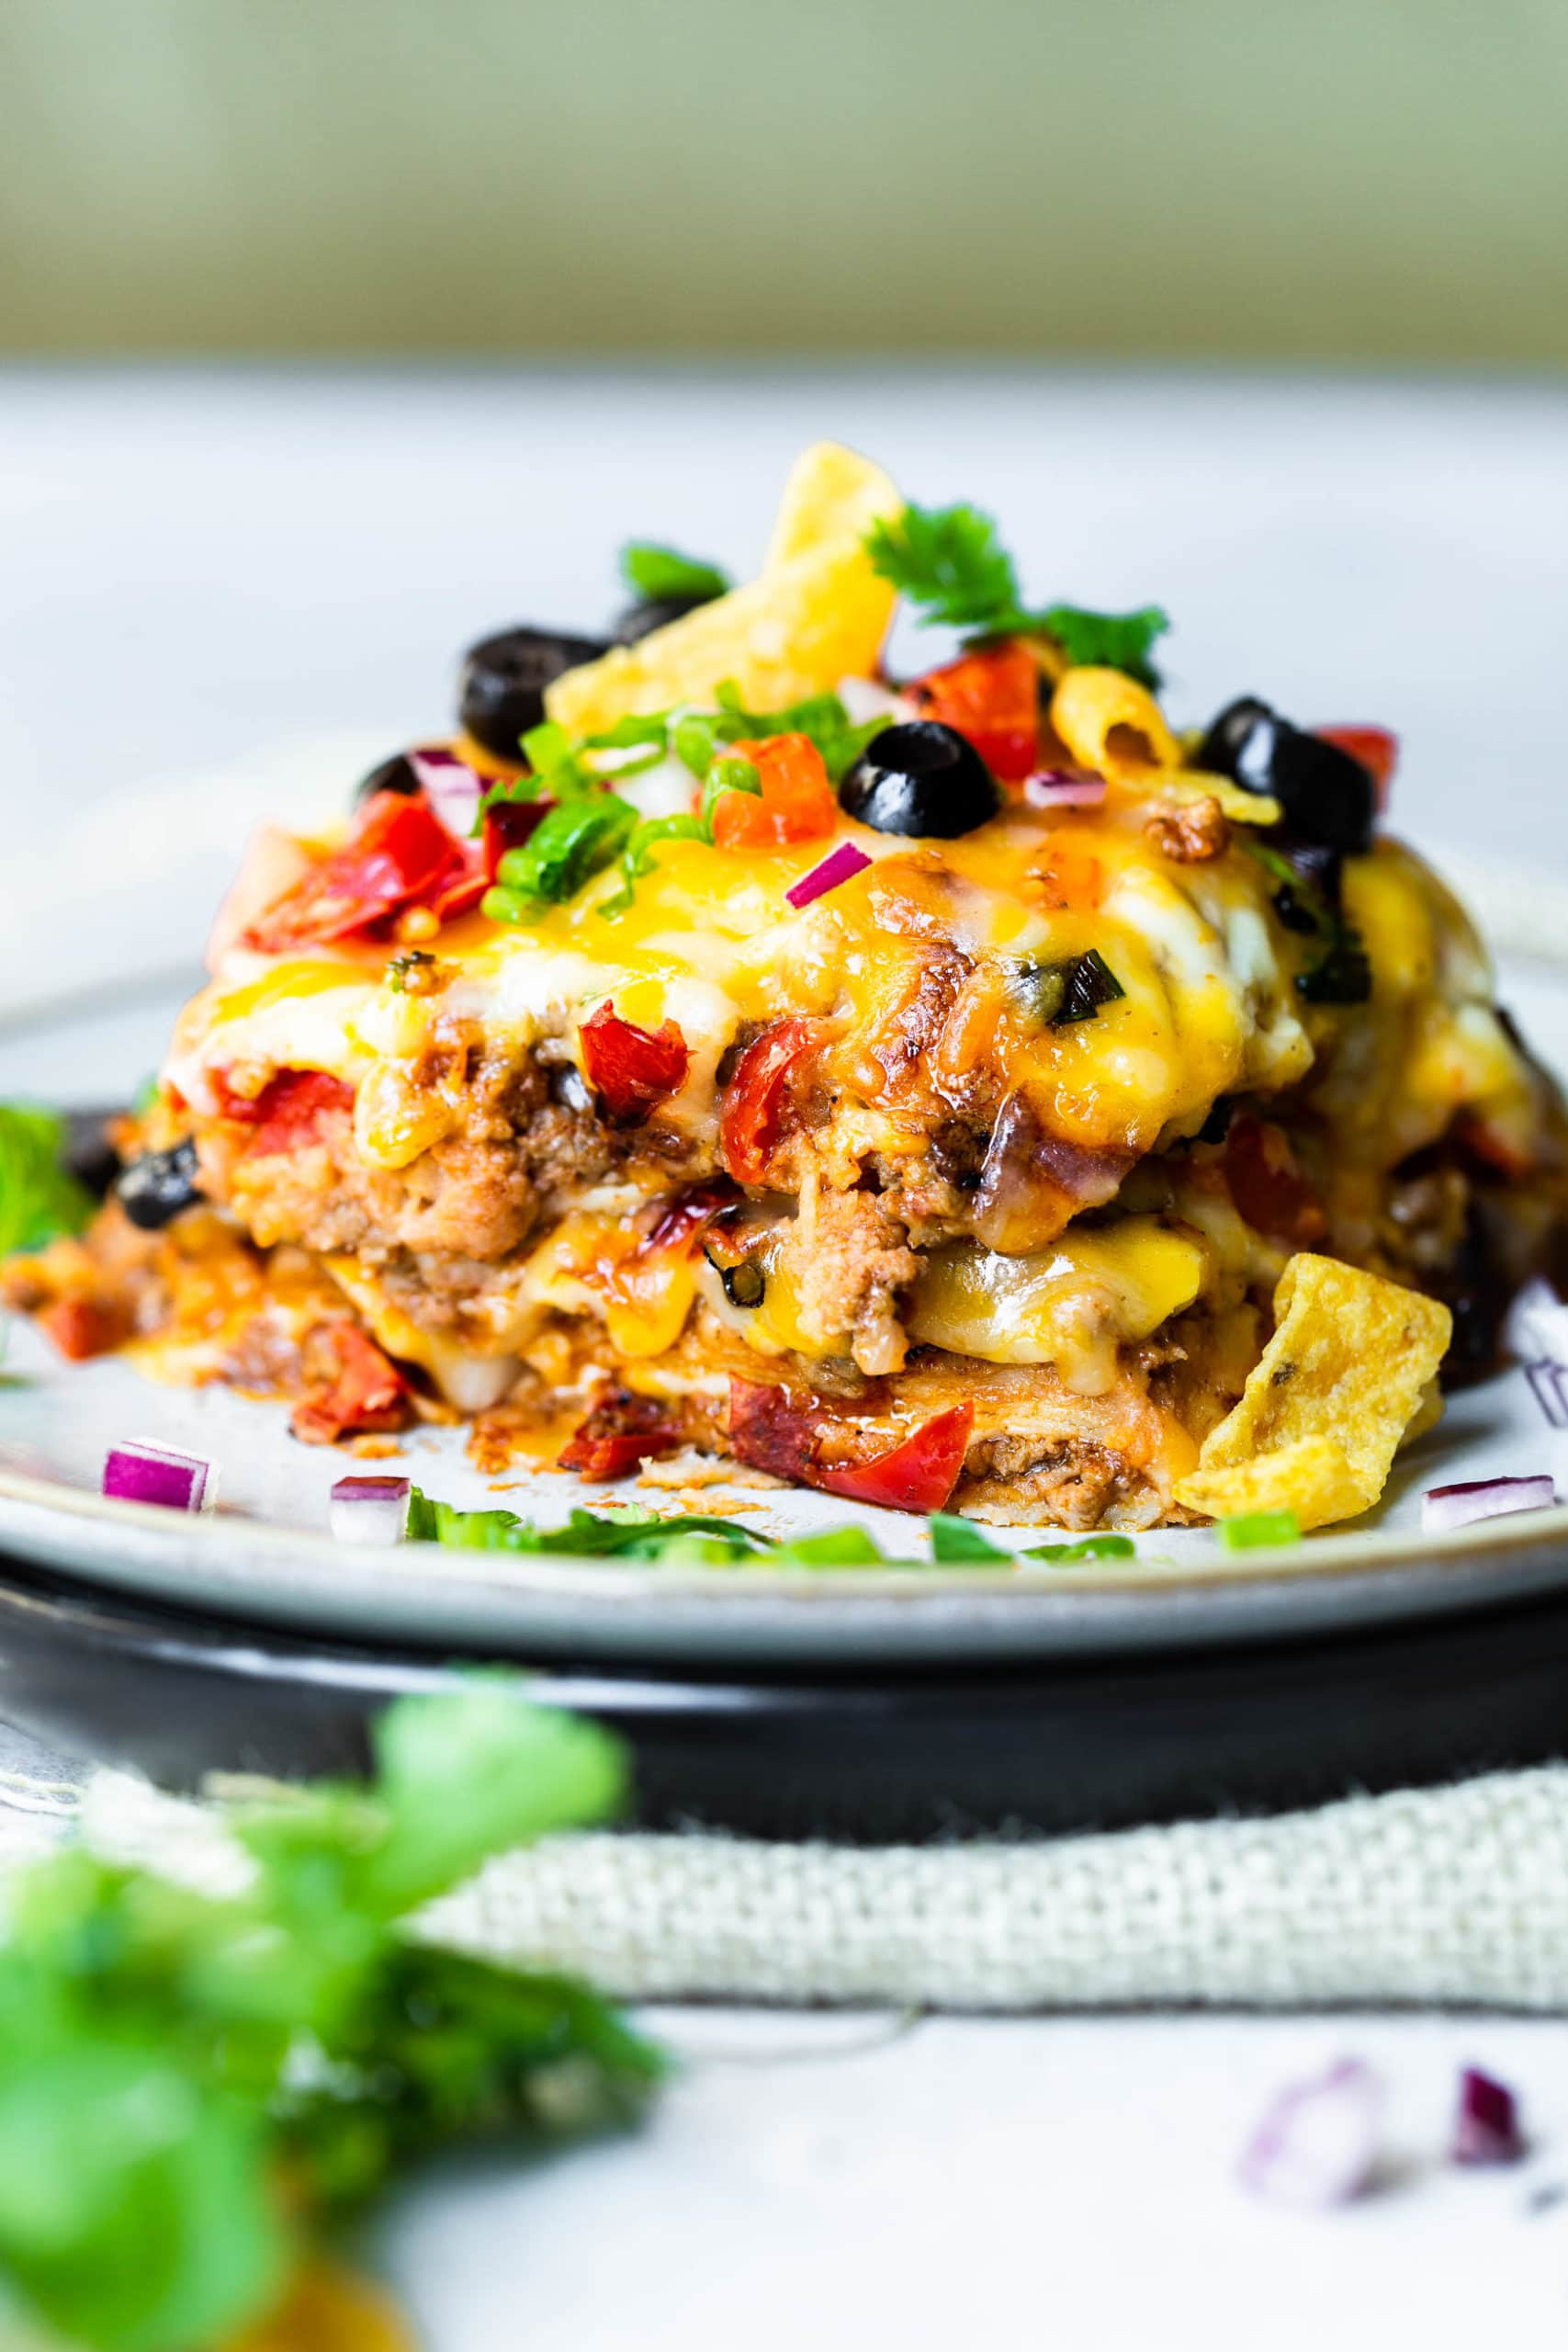 a photo of a piece of taco casserole on a saucer piled high with layers of cheesy ground beef, melted cheese on top, black beans, diced tomatoes and fresh cilantro.